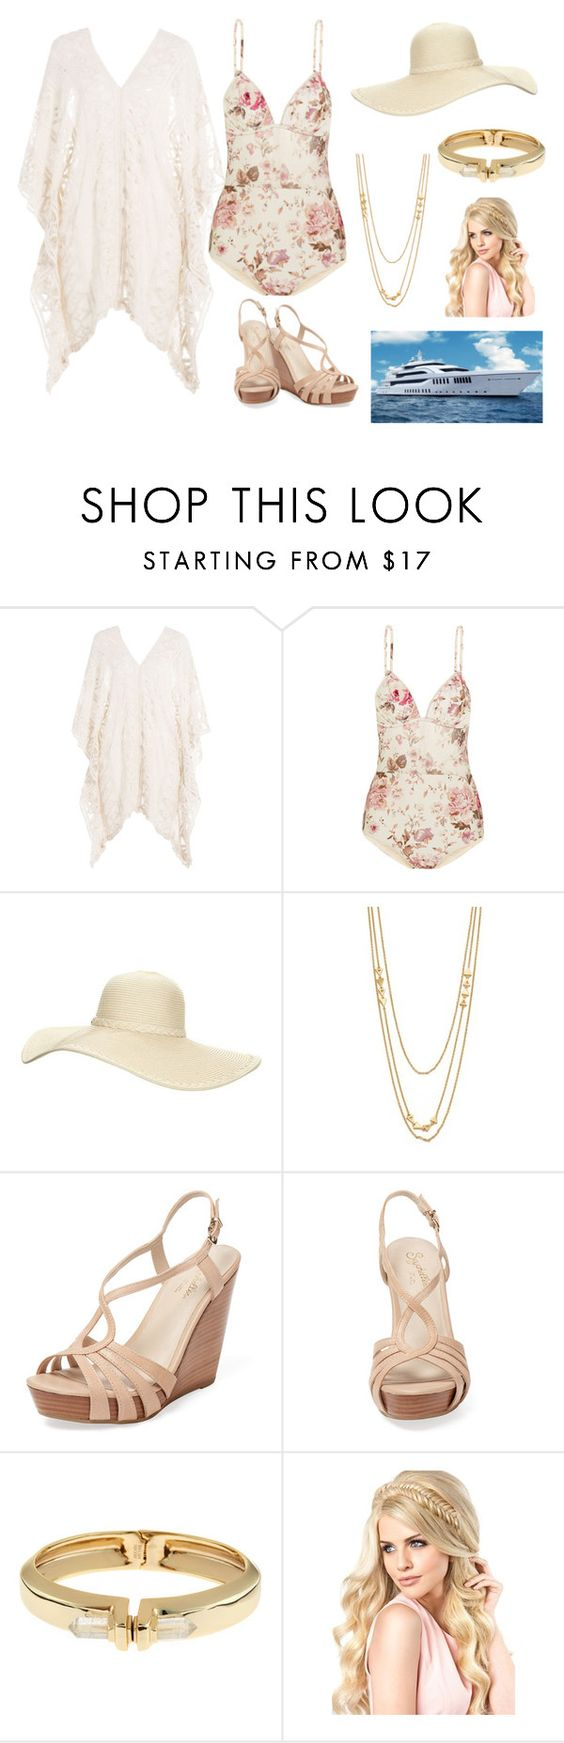 """""""Yacht Life"""" by lby54229 ❤ liked on Polyvore featuring Eberjey, Zimmermann, Reger by Janet Reger, Gorjana, Seychelles and Alexis Bittar"""